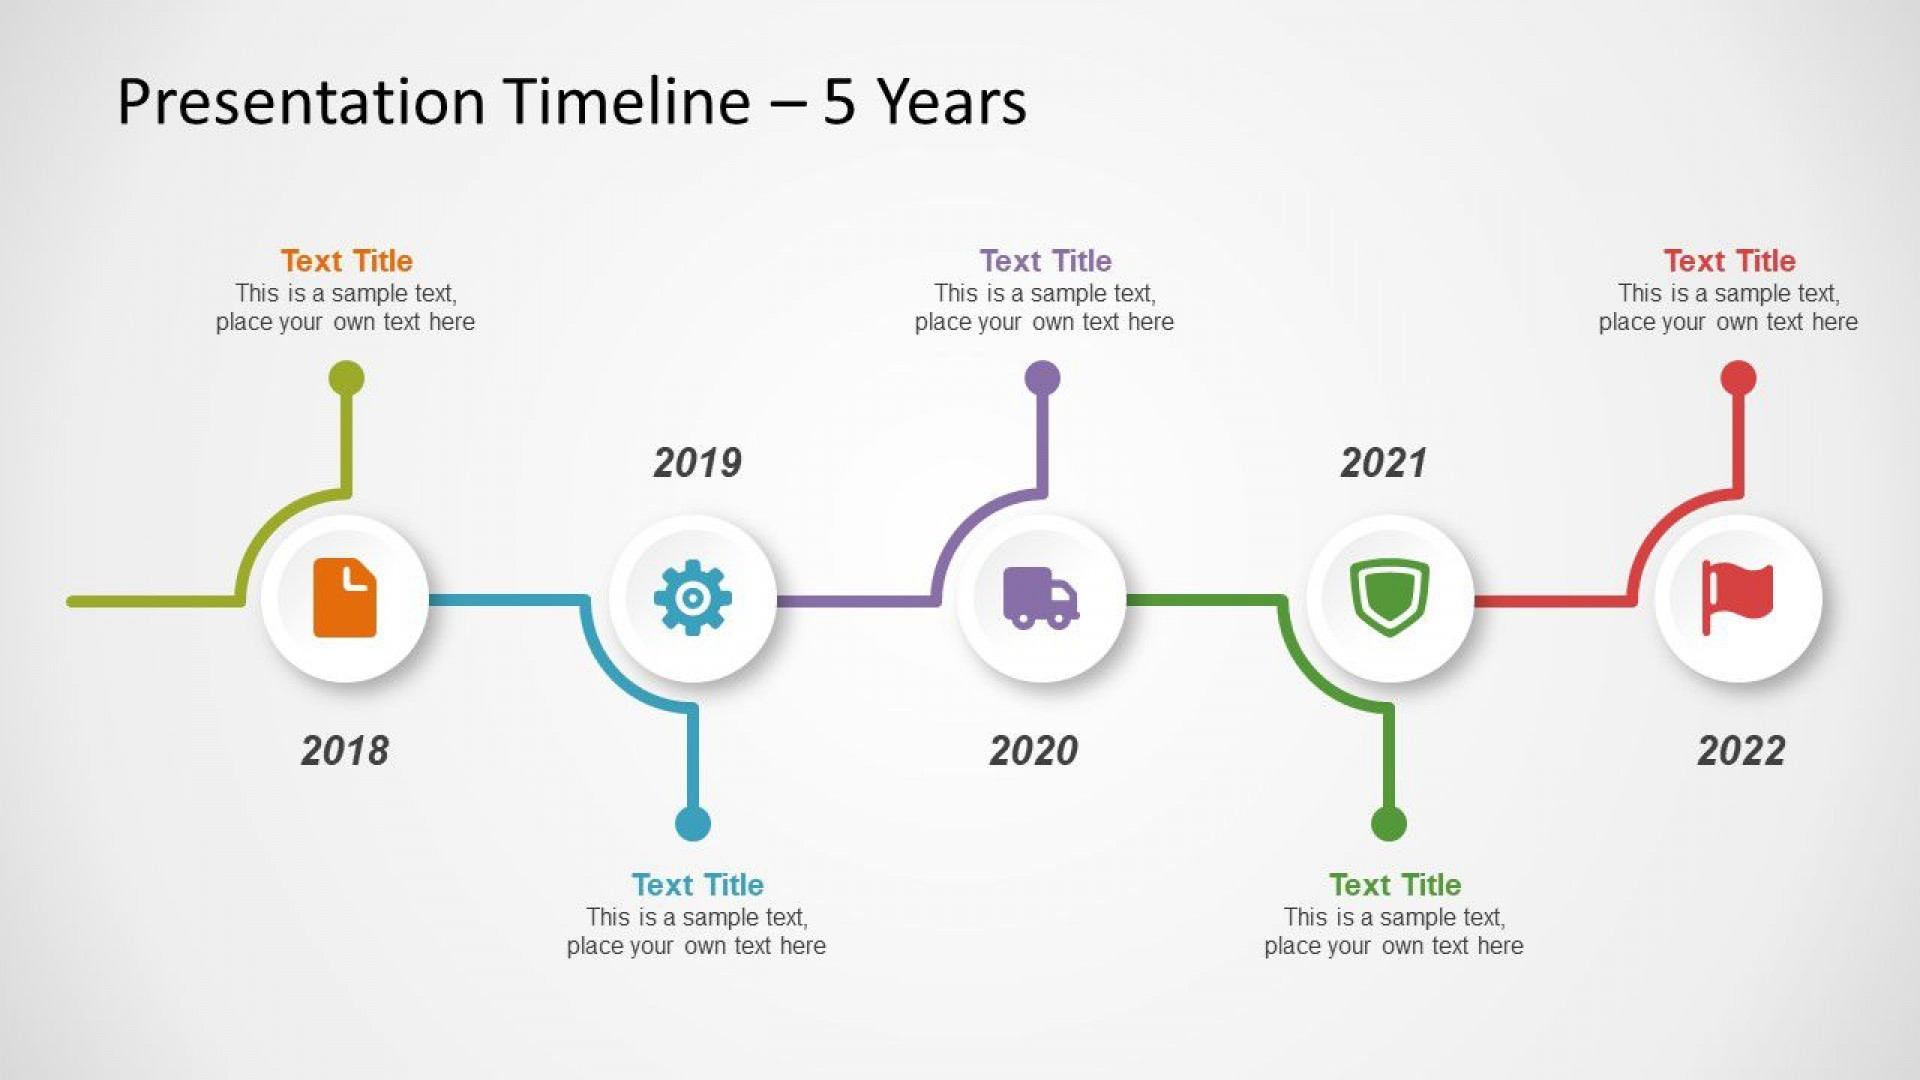 003 Impressive Timeline Format For Presentation Highest Quality  Example Graph Template Powerpoint Download1920